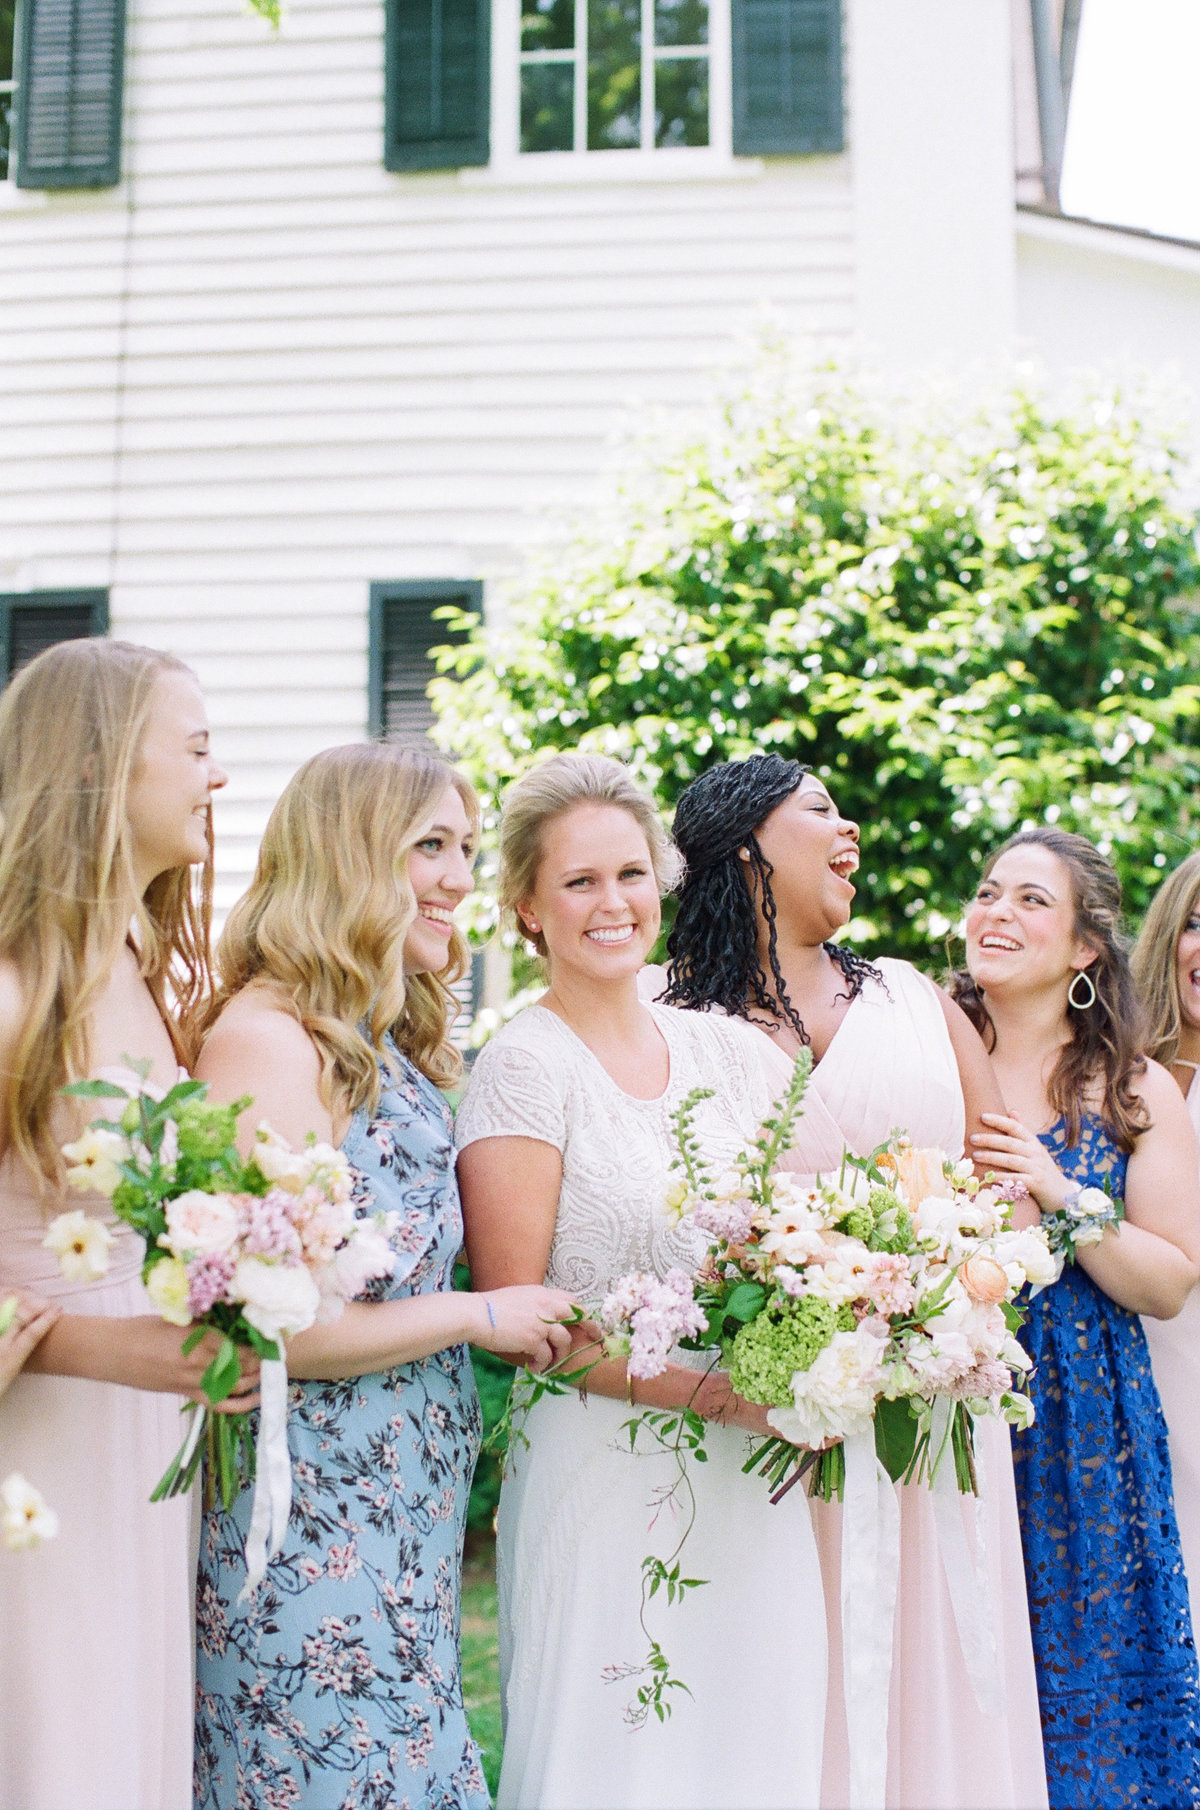 Candid Photo Bride with Bridesmaids